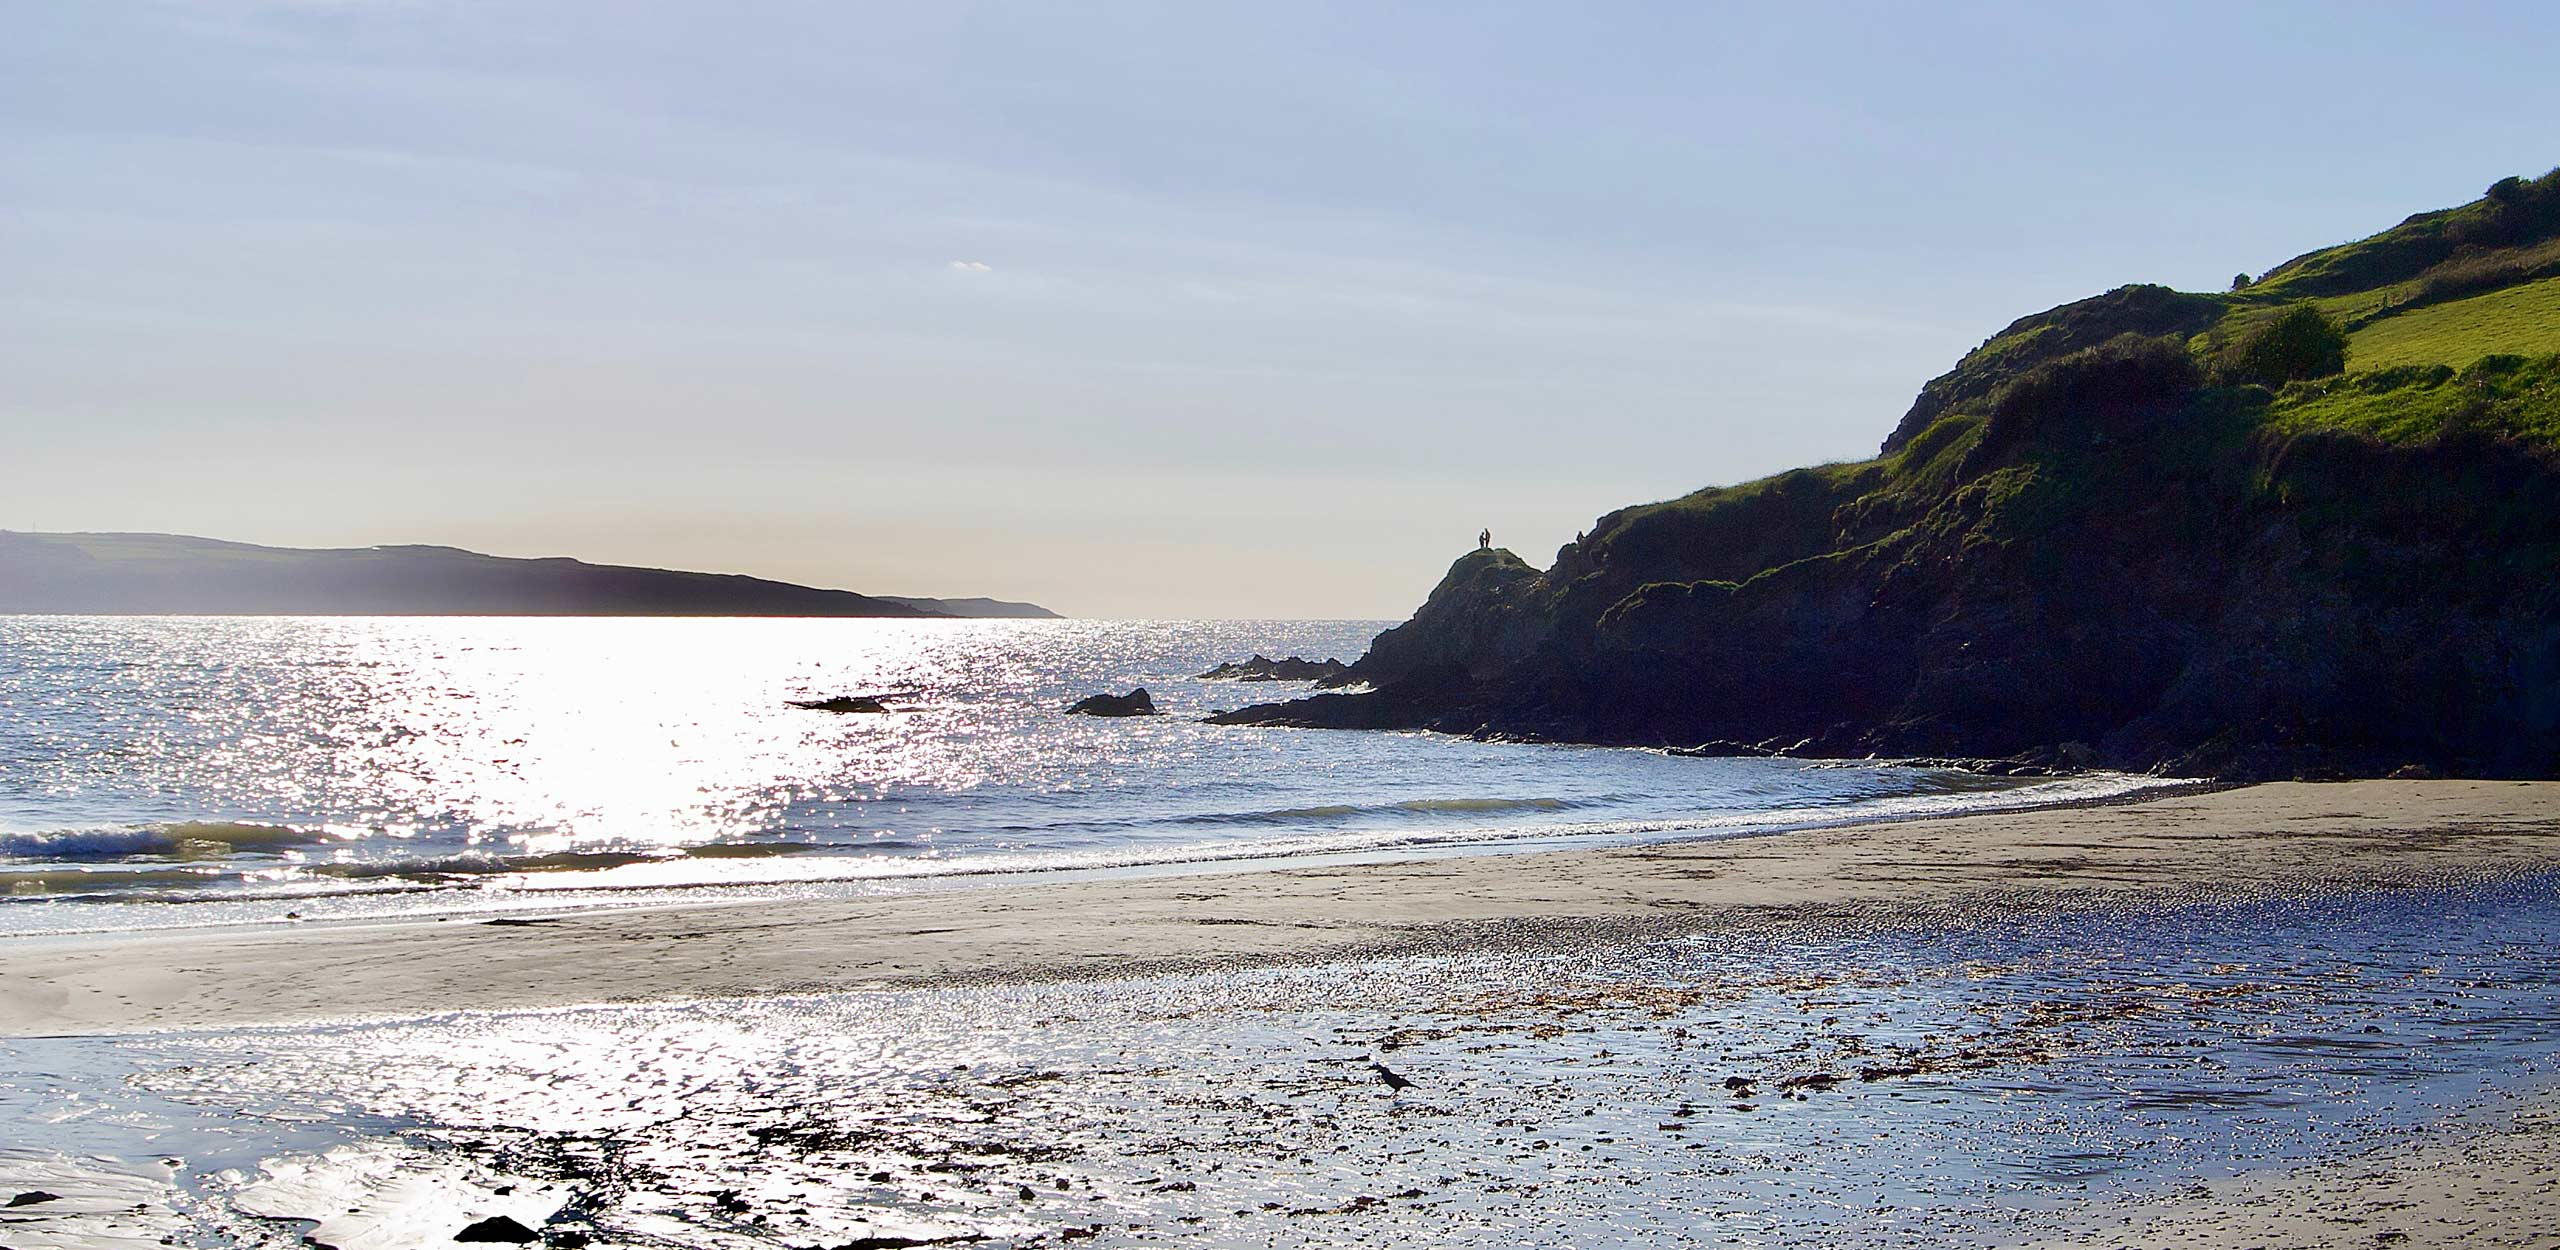 Afternoon sun at Pwllgwaelod Beach at Dinas Cross